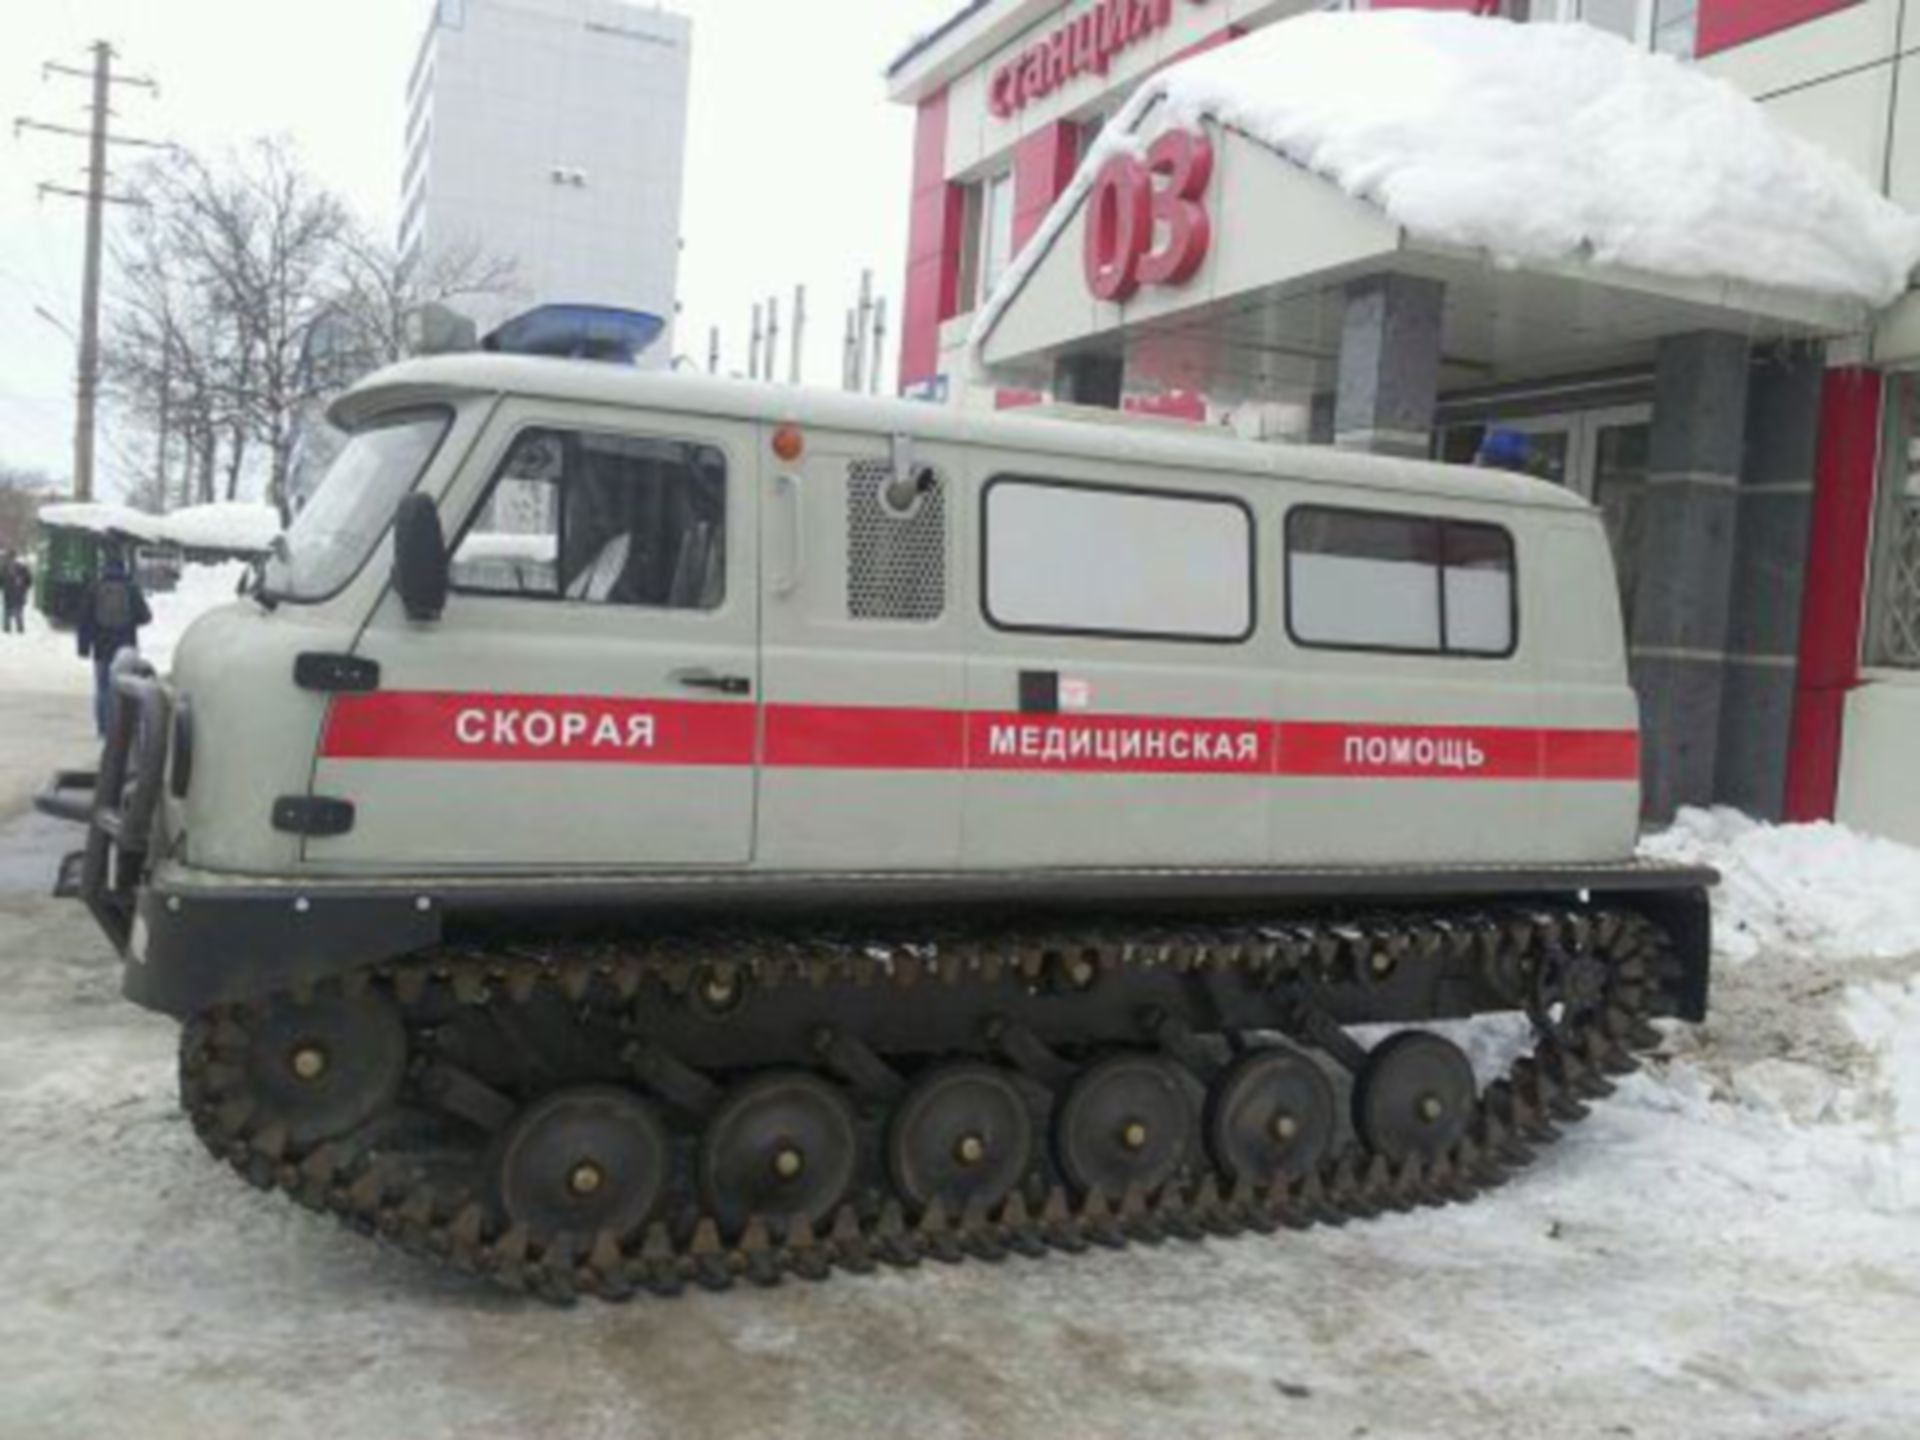 Emergency doctor's vehicle in the Russian winter